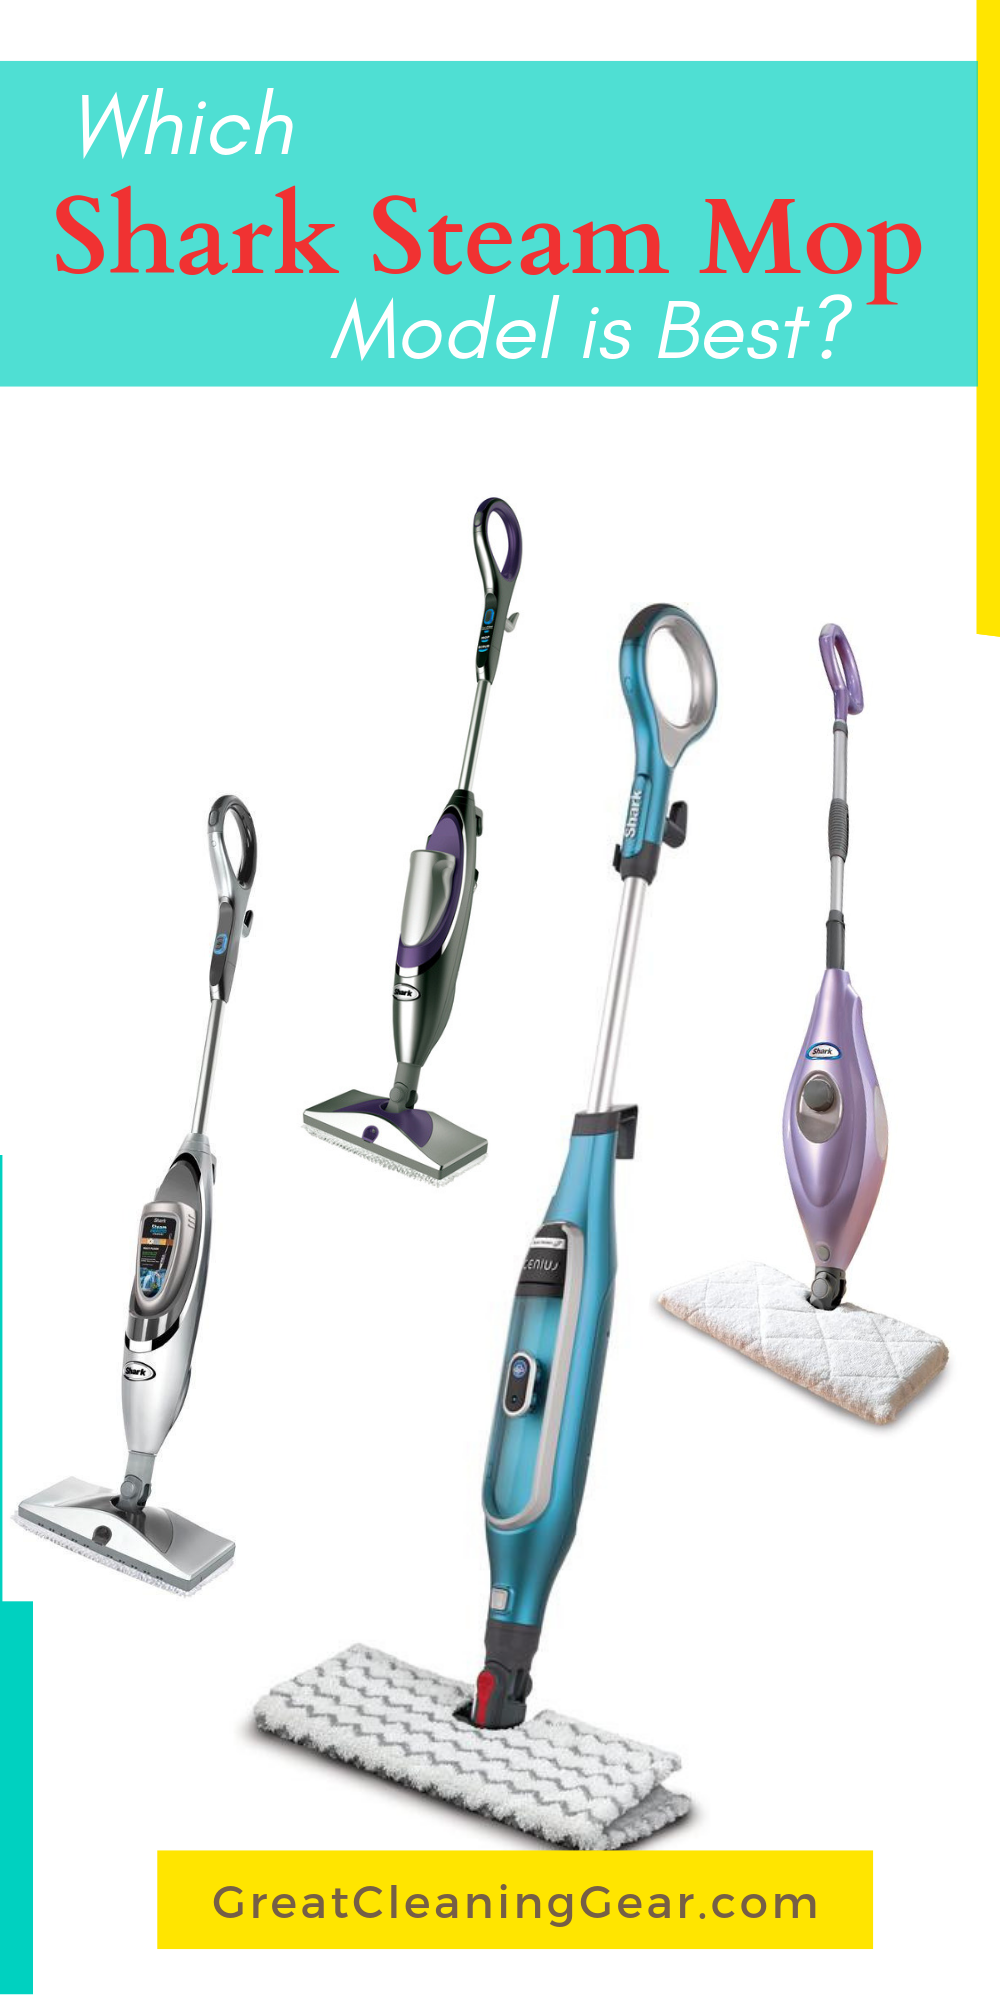 Compare Shark Steam Mop Models Great Cleaning Gear Shark Steam Mop Steam Mop Mops